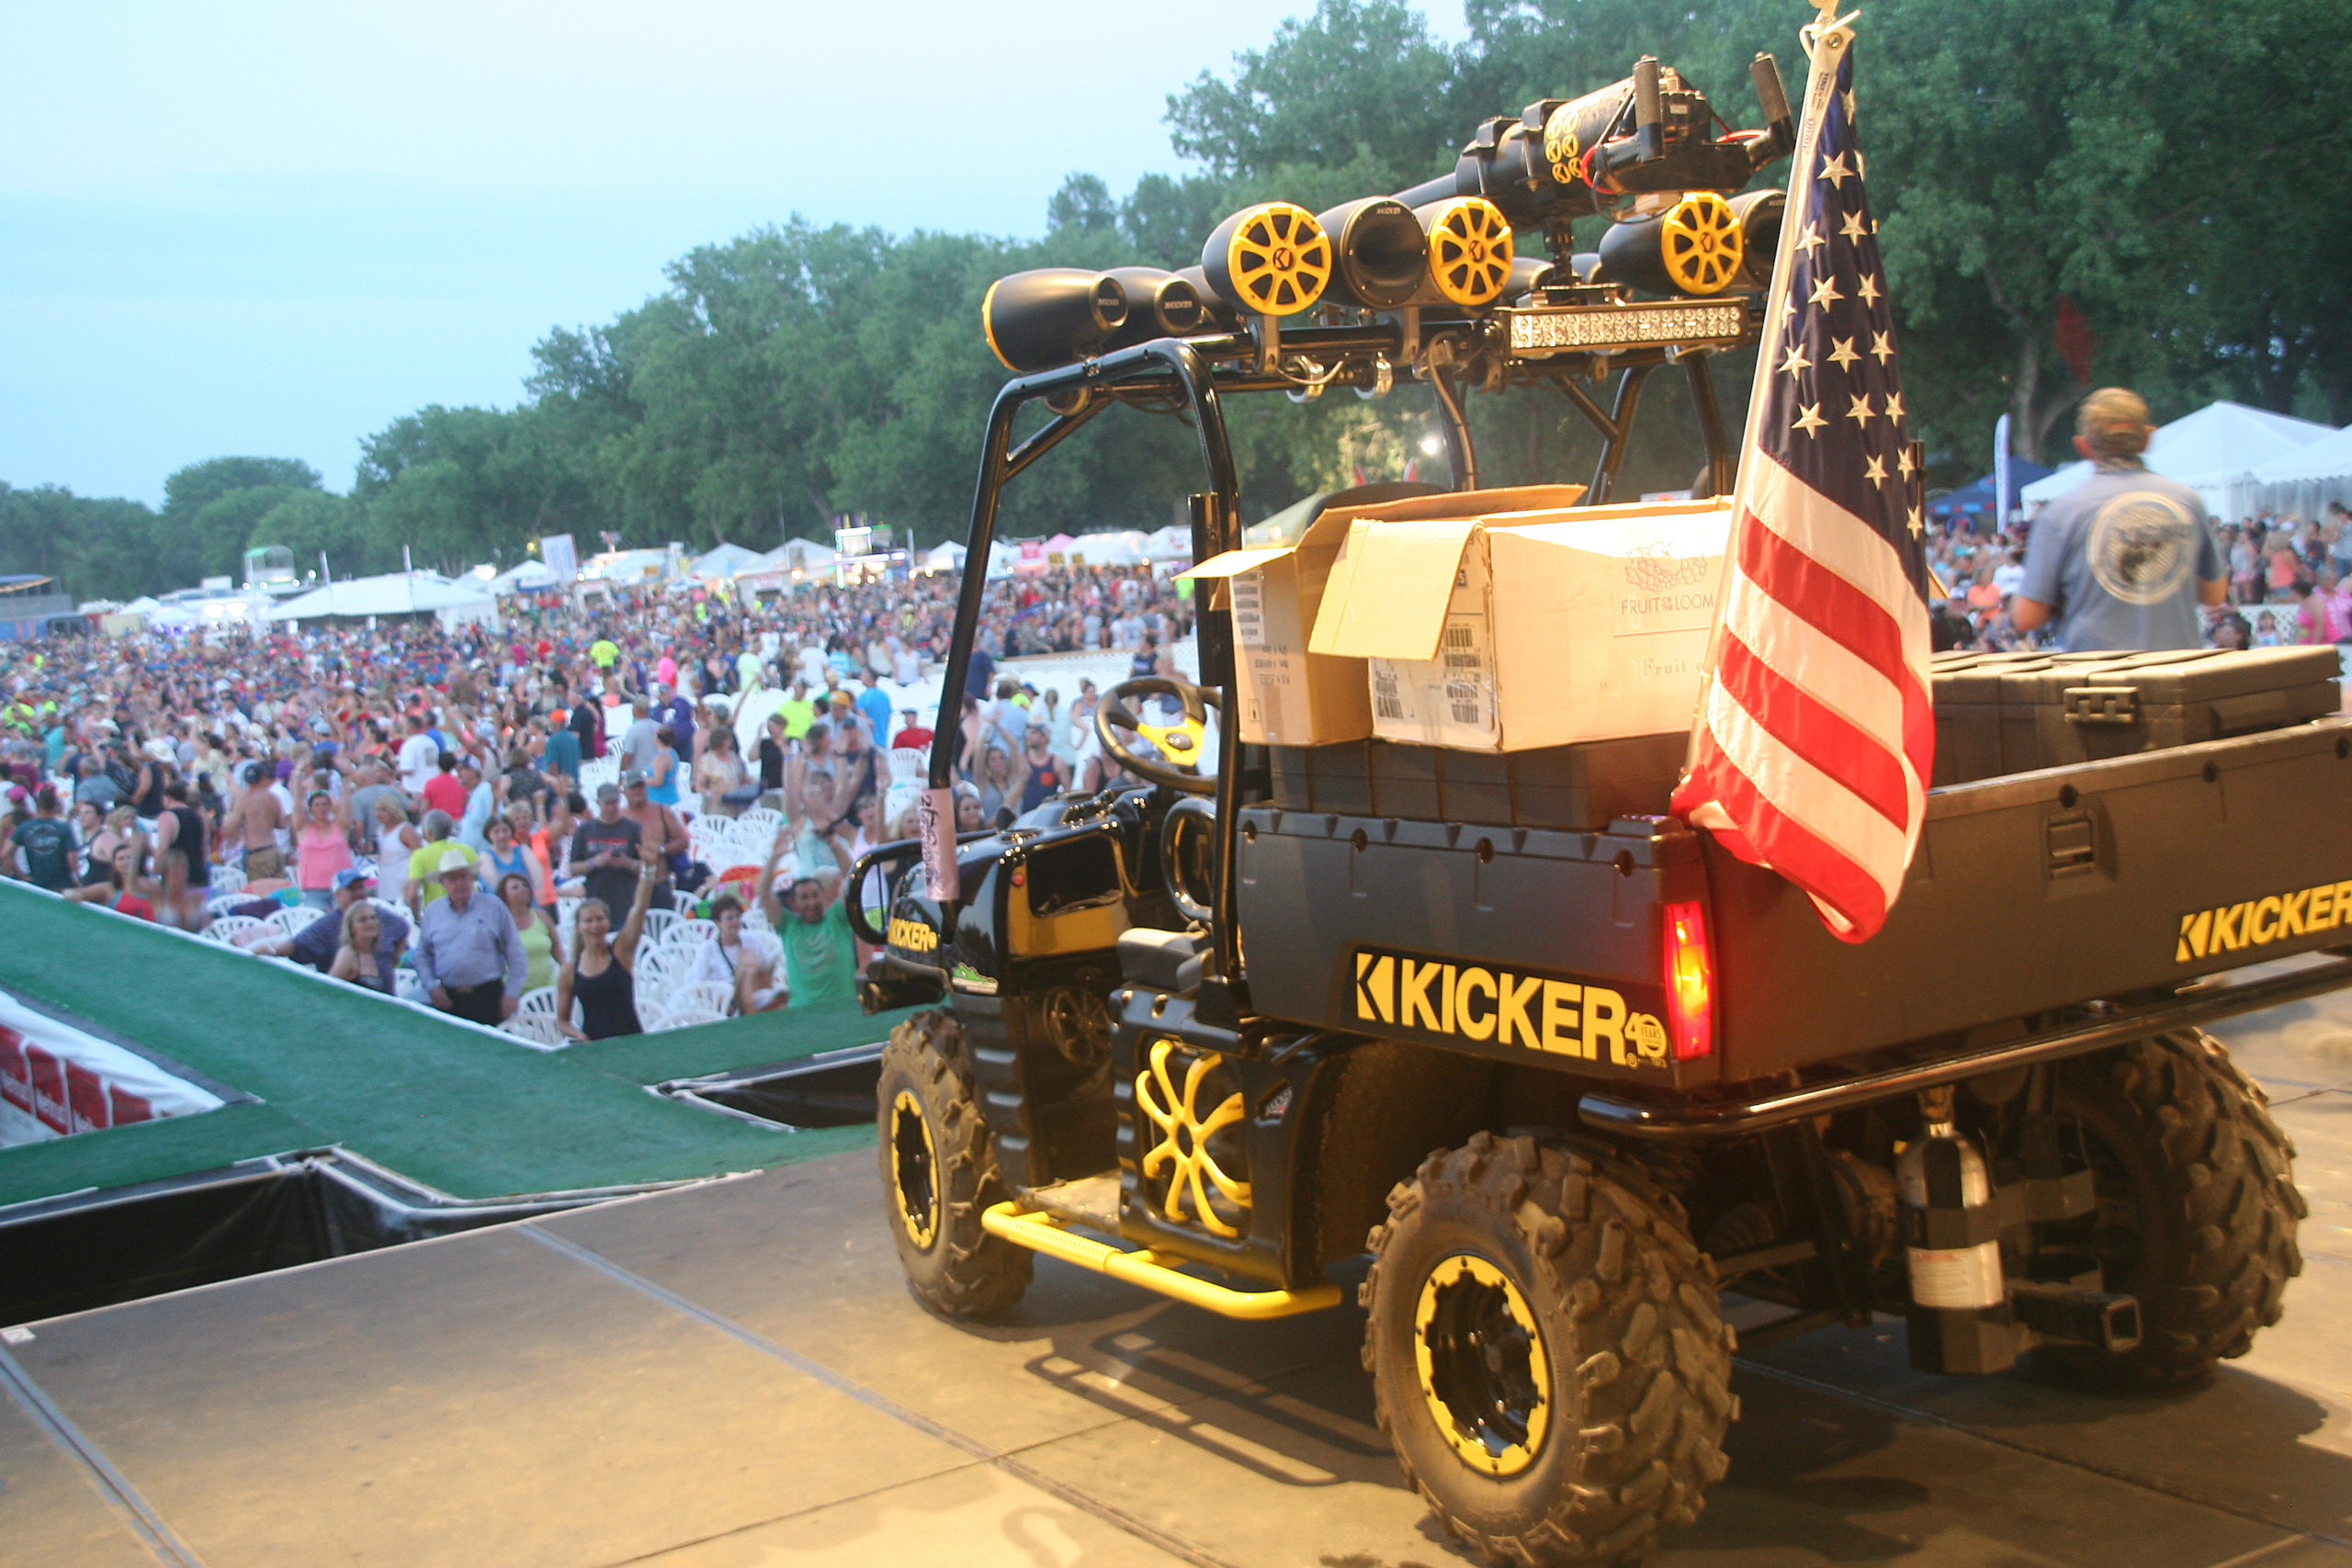 KICKER is serving as title sponsor of the KICKER Country Stampede for the fifth straight year